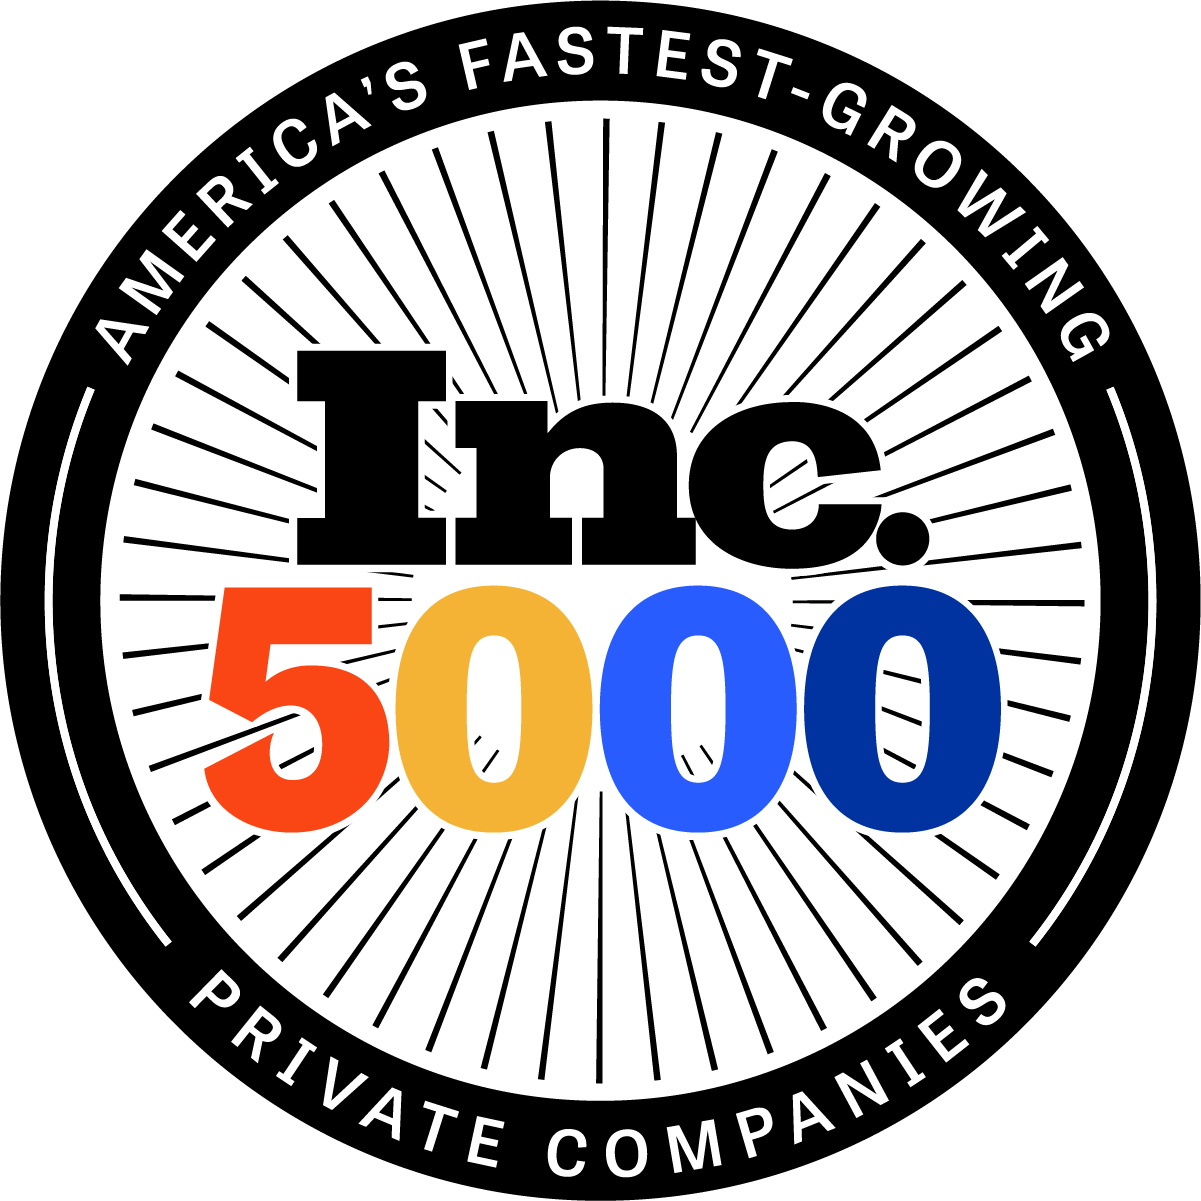 Inc5000 Fastest-Growing Companies In The United States